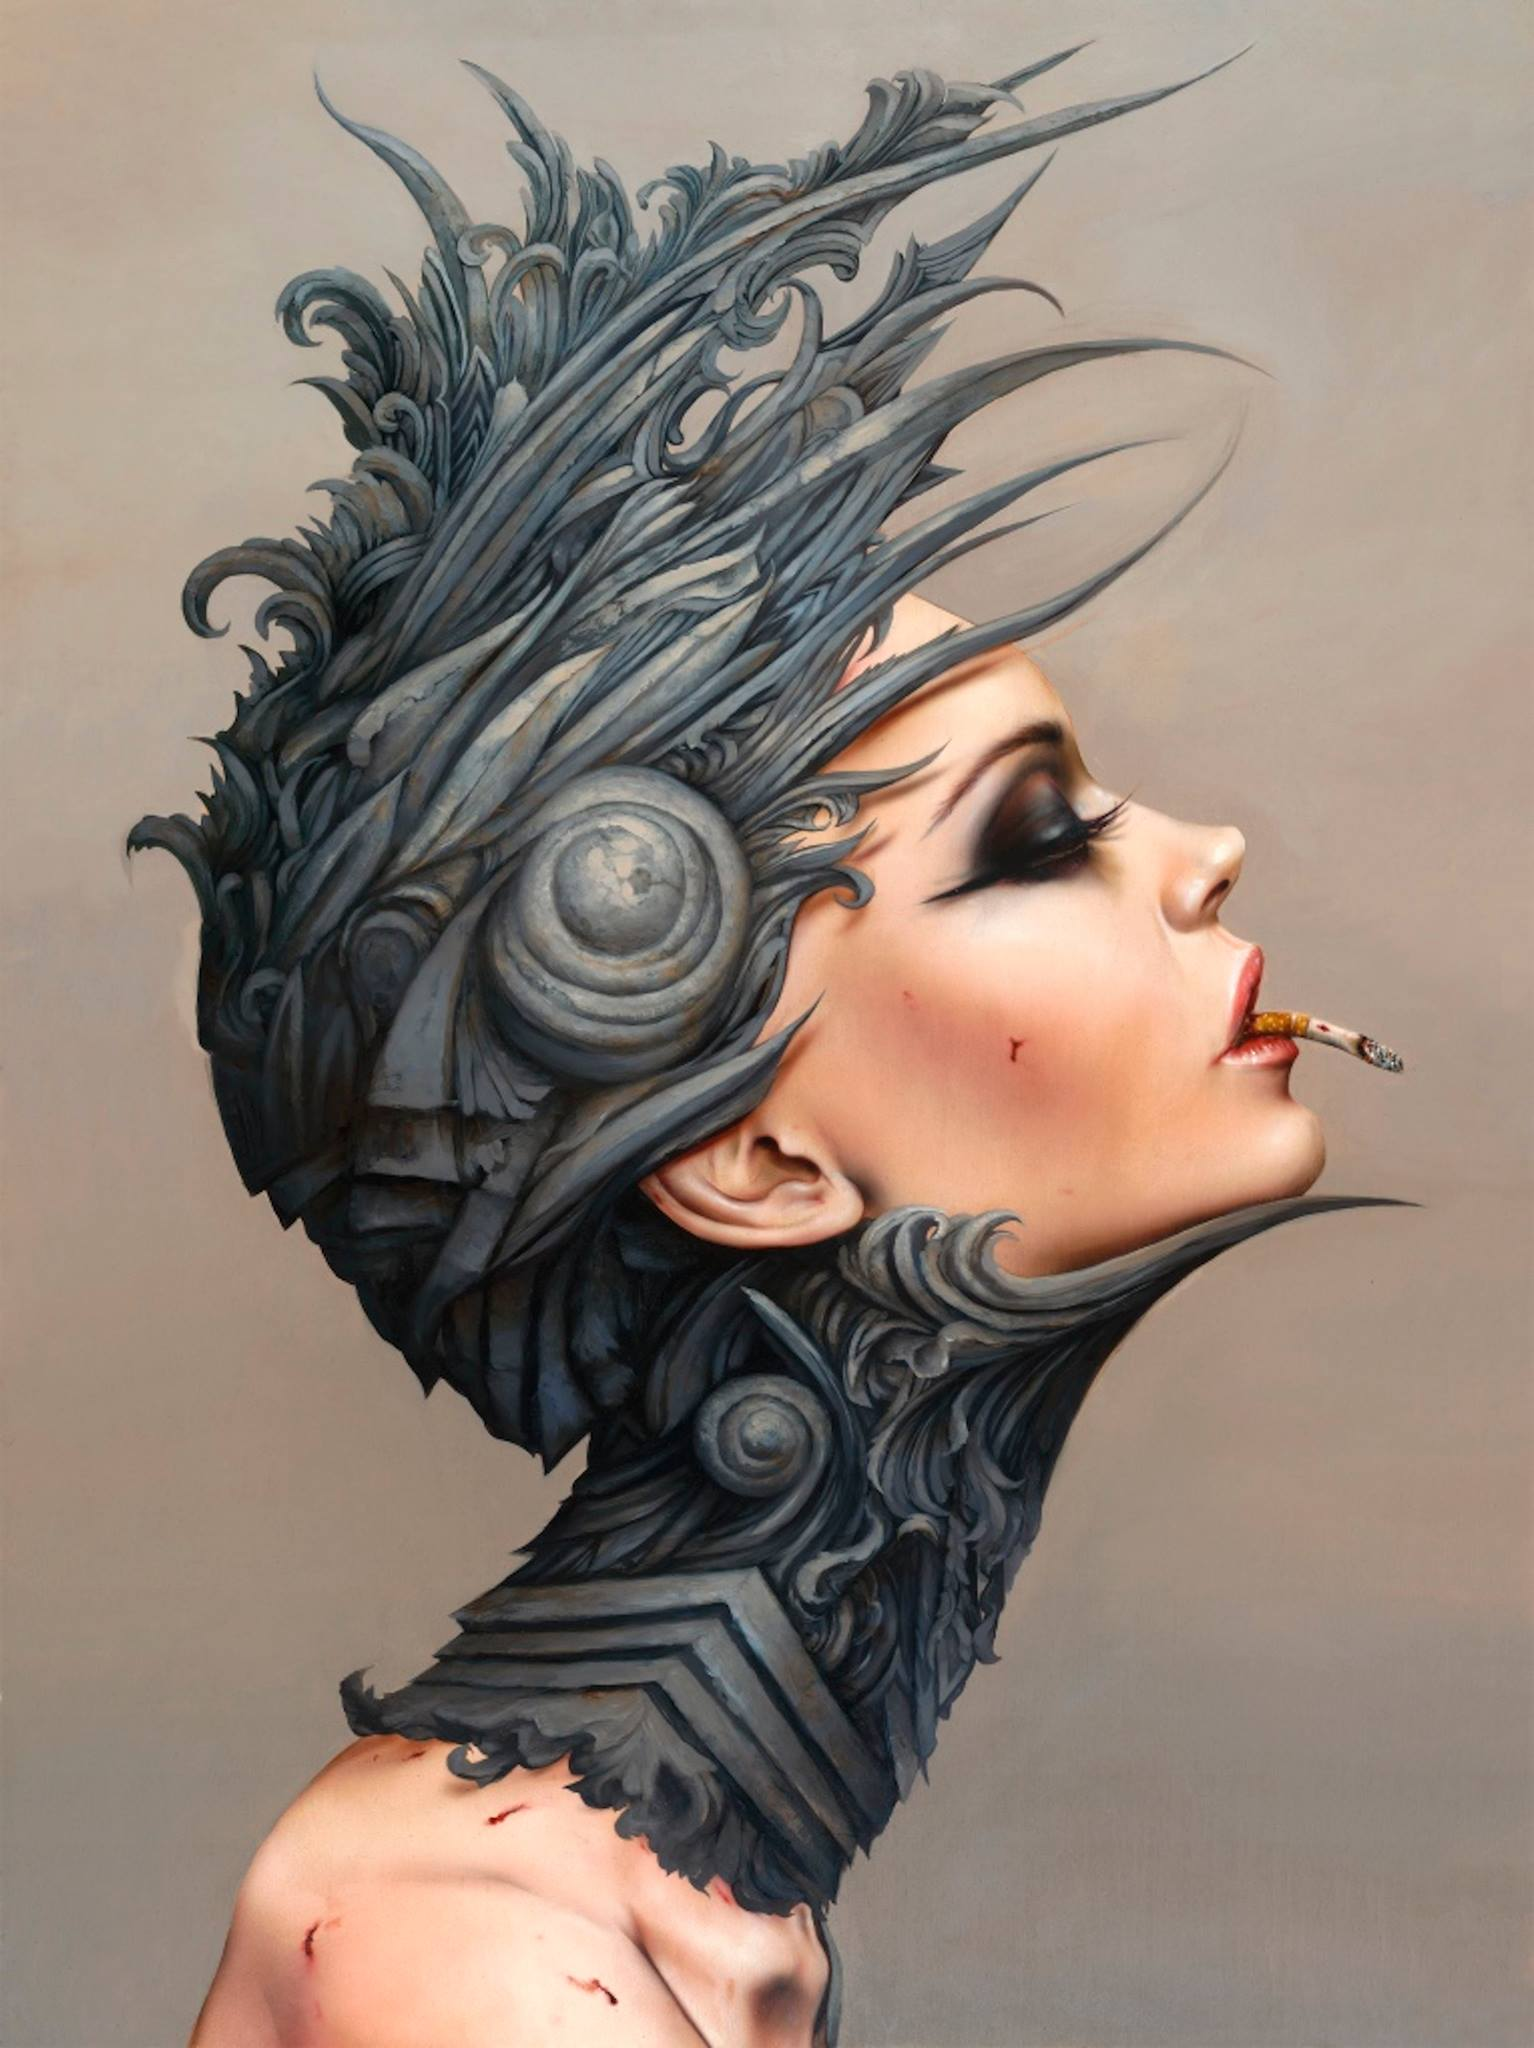 Brian M. Viveros – DESENSITIZED 13 / Paintings